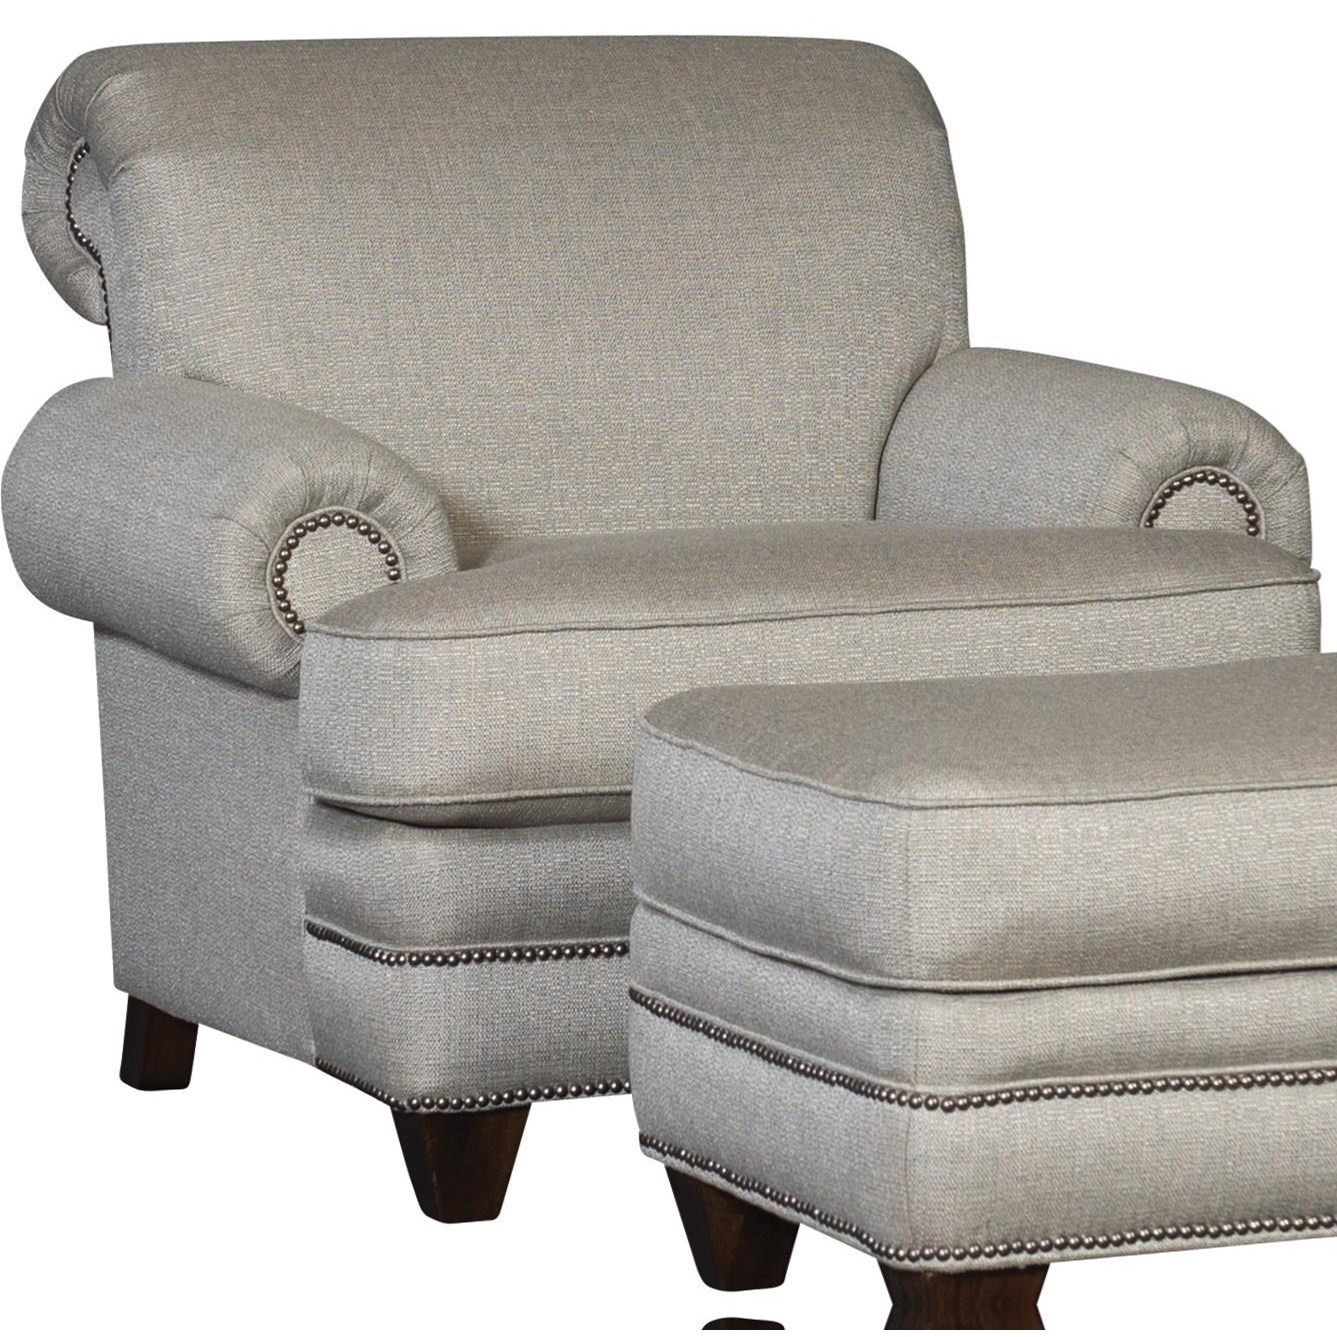 2377 Chair by Mayo at Wilson's Furniture